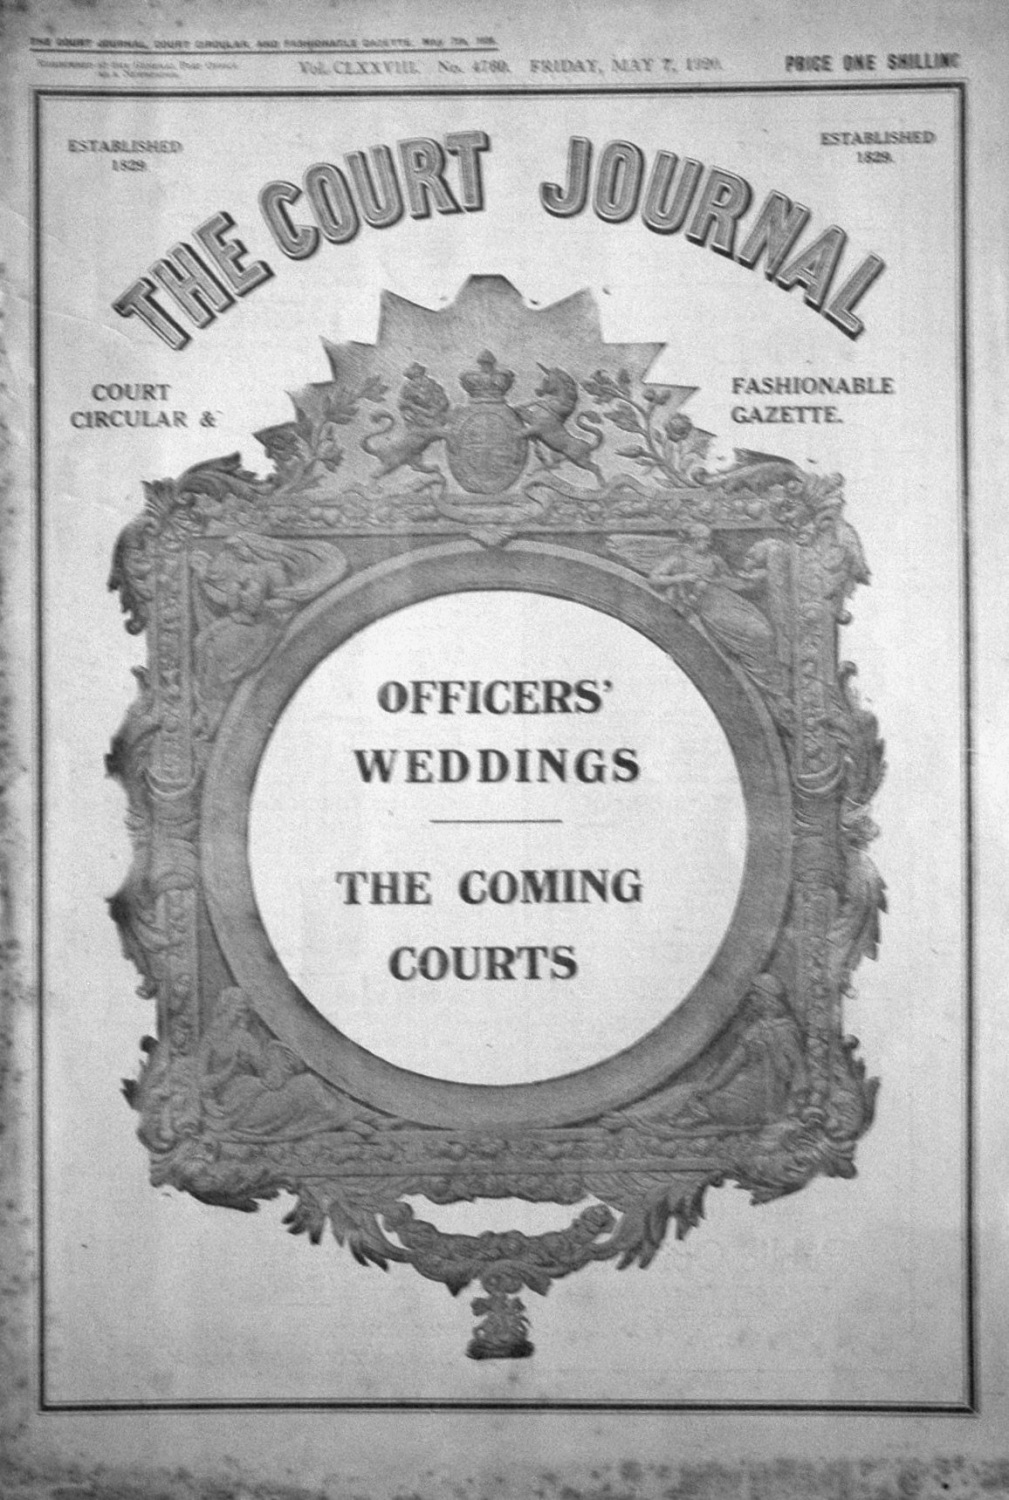 The Court Journal, May 7th 1920.